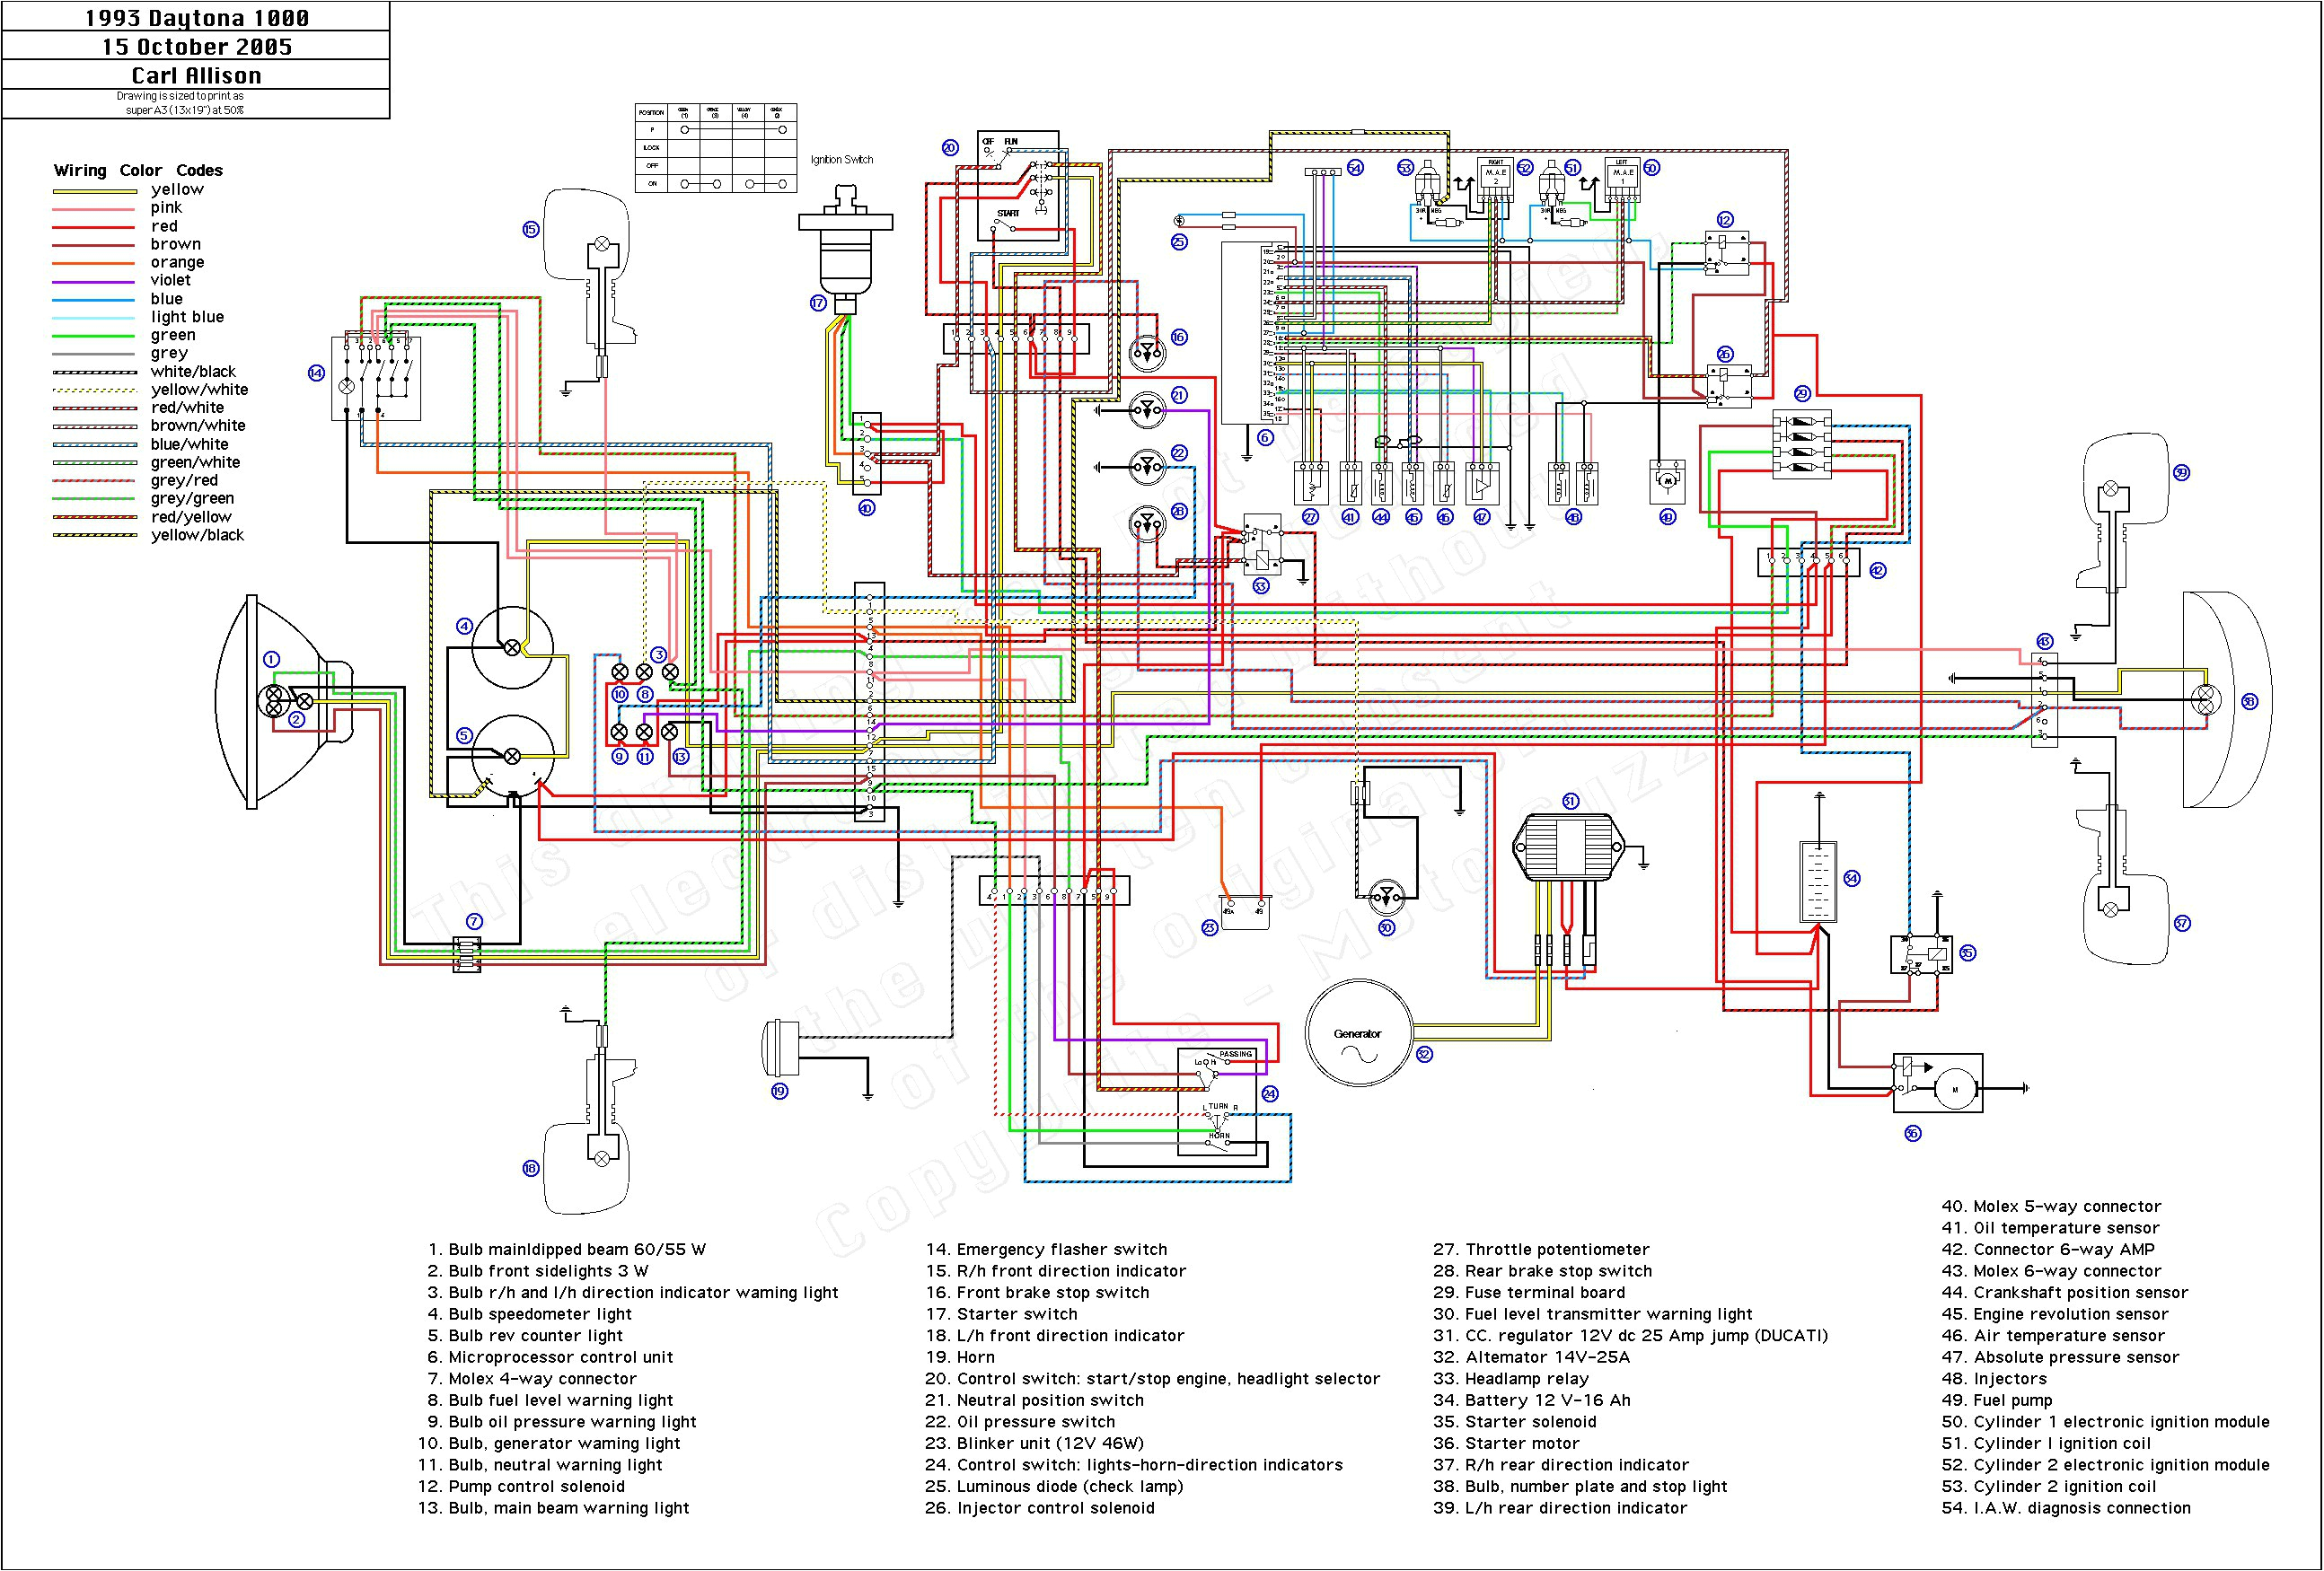 wiring diagram furthermore yamaha virago 250 fuel pump diagram on wiring diagram for yamaha warrior 1700